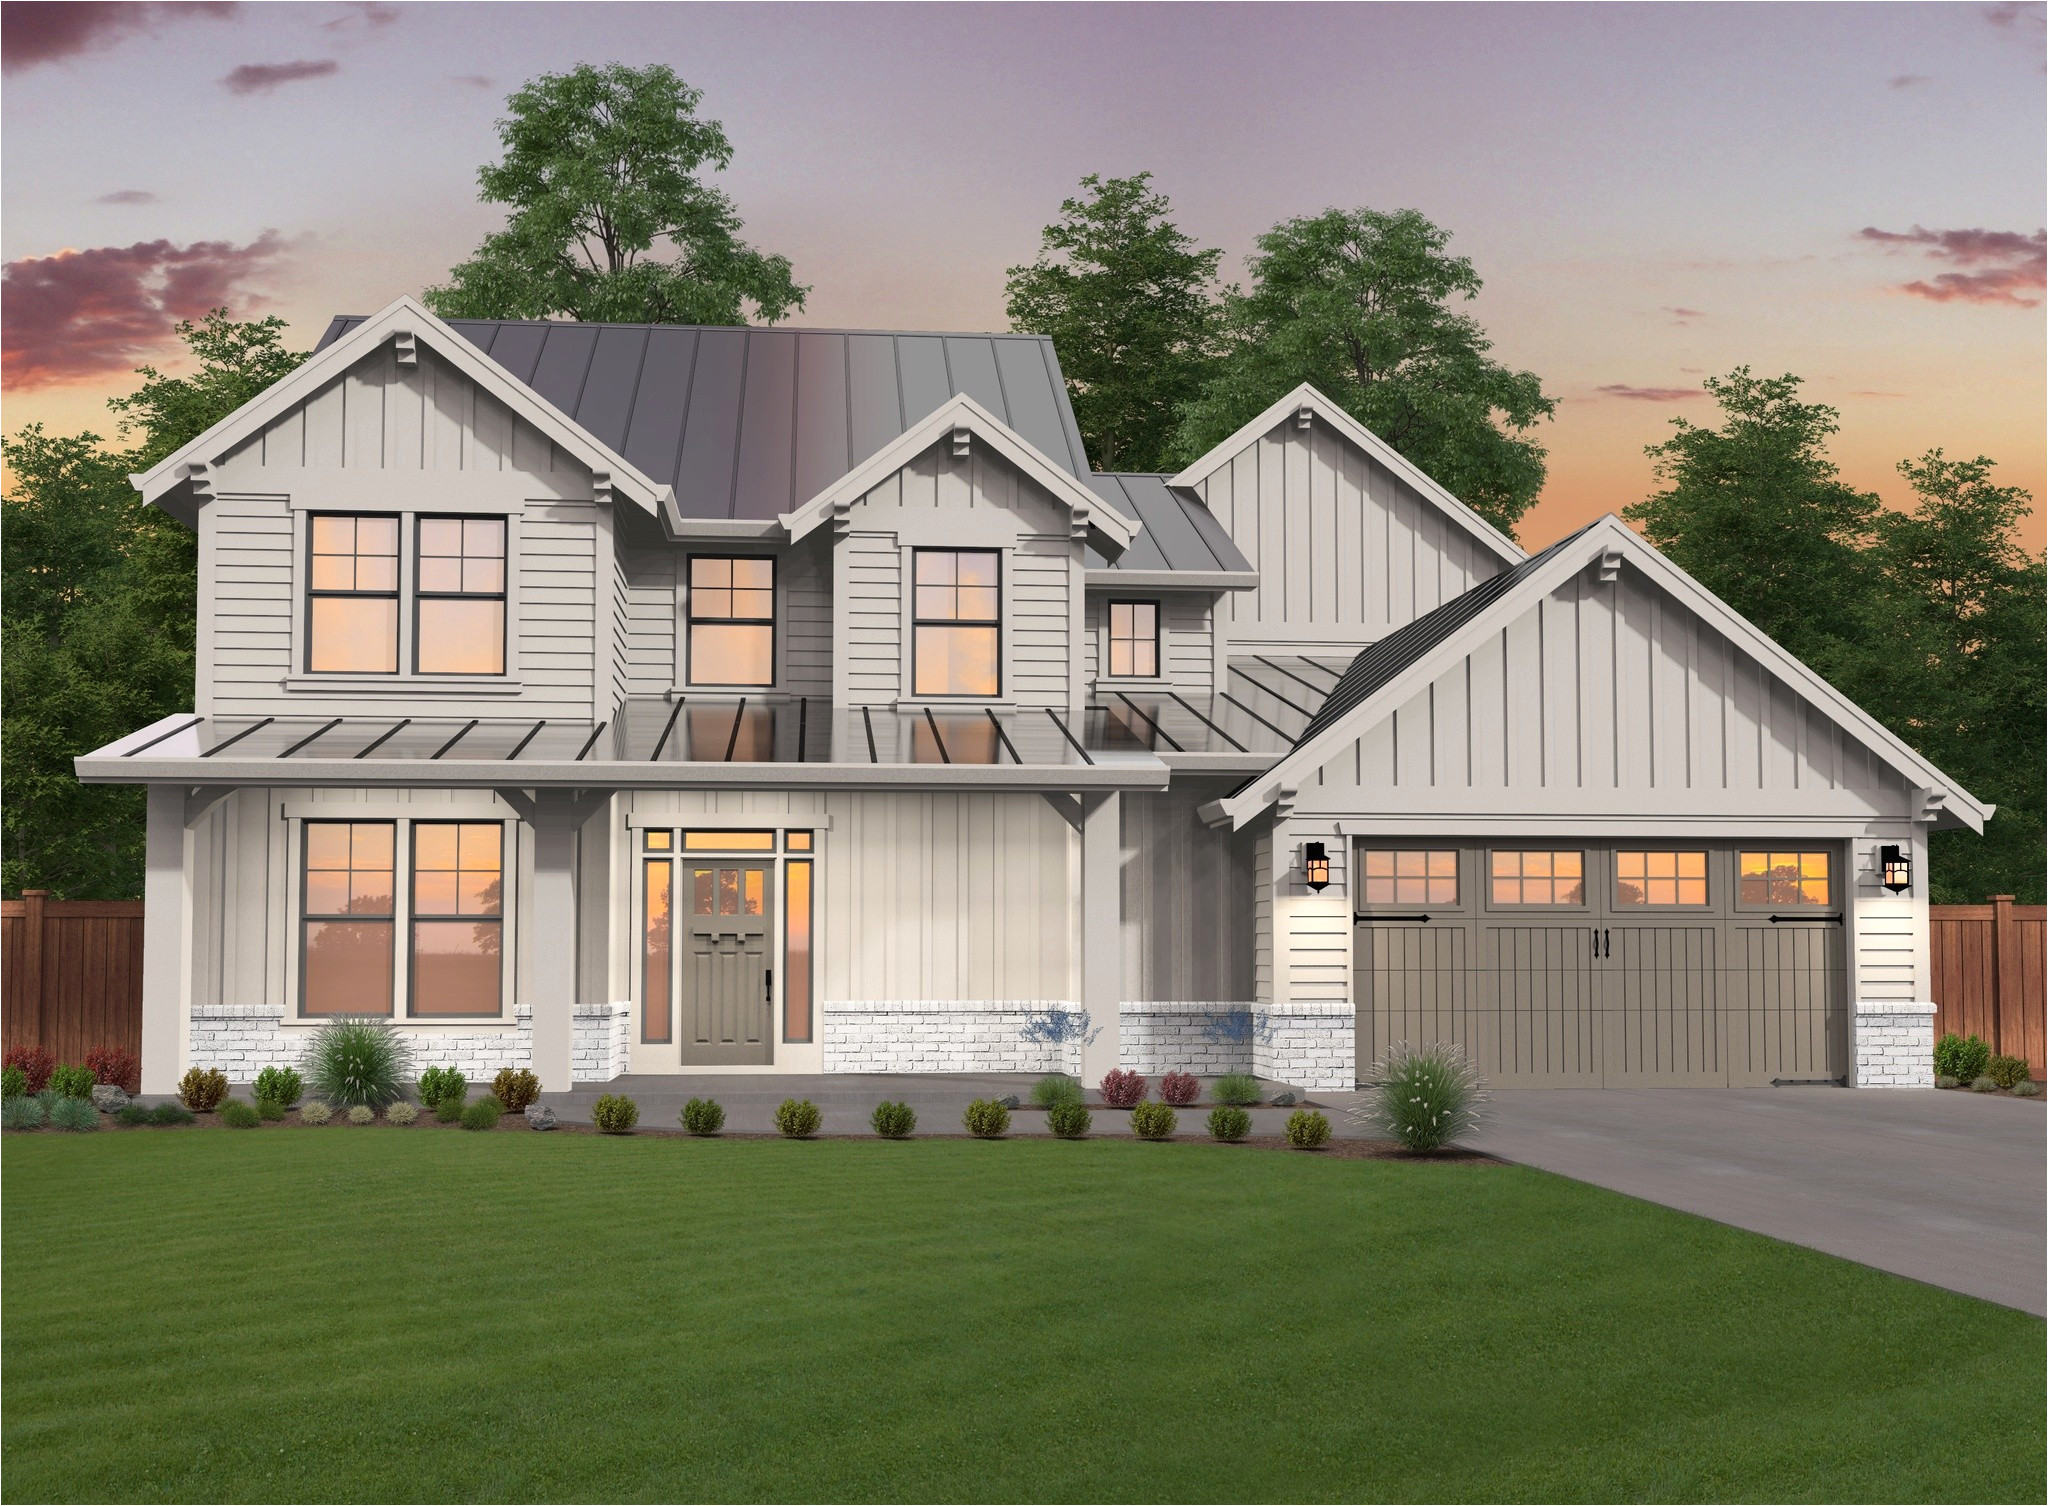 madison home builders plans inspirational madison home builders floor plans elegant modern house plans